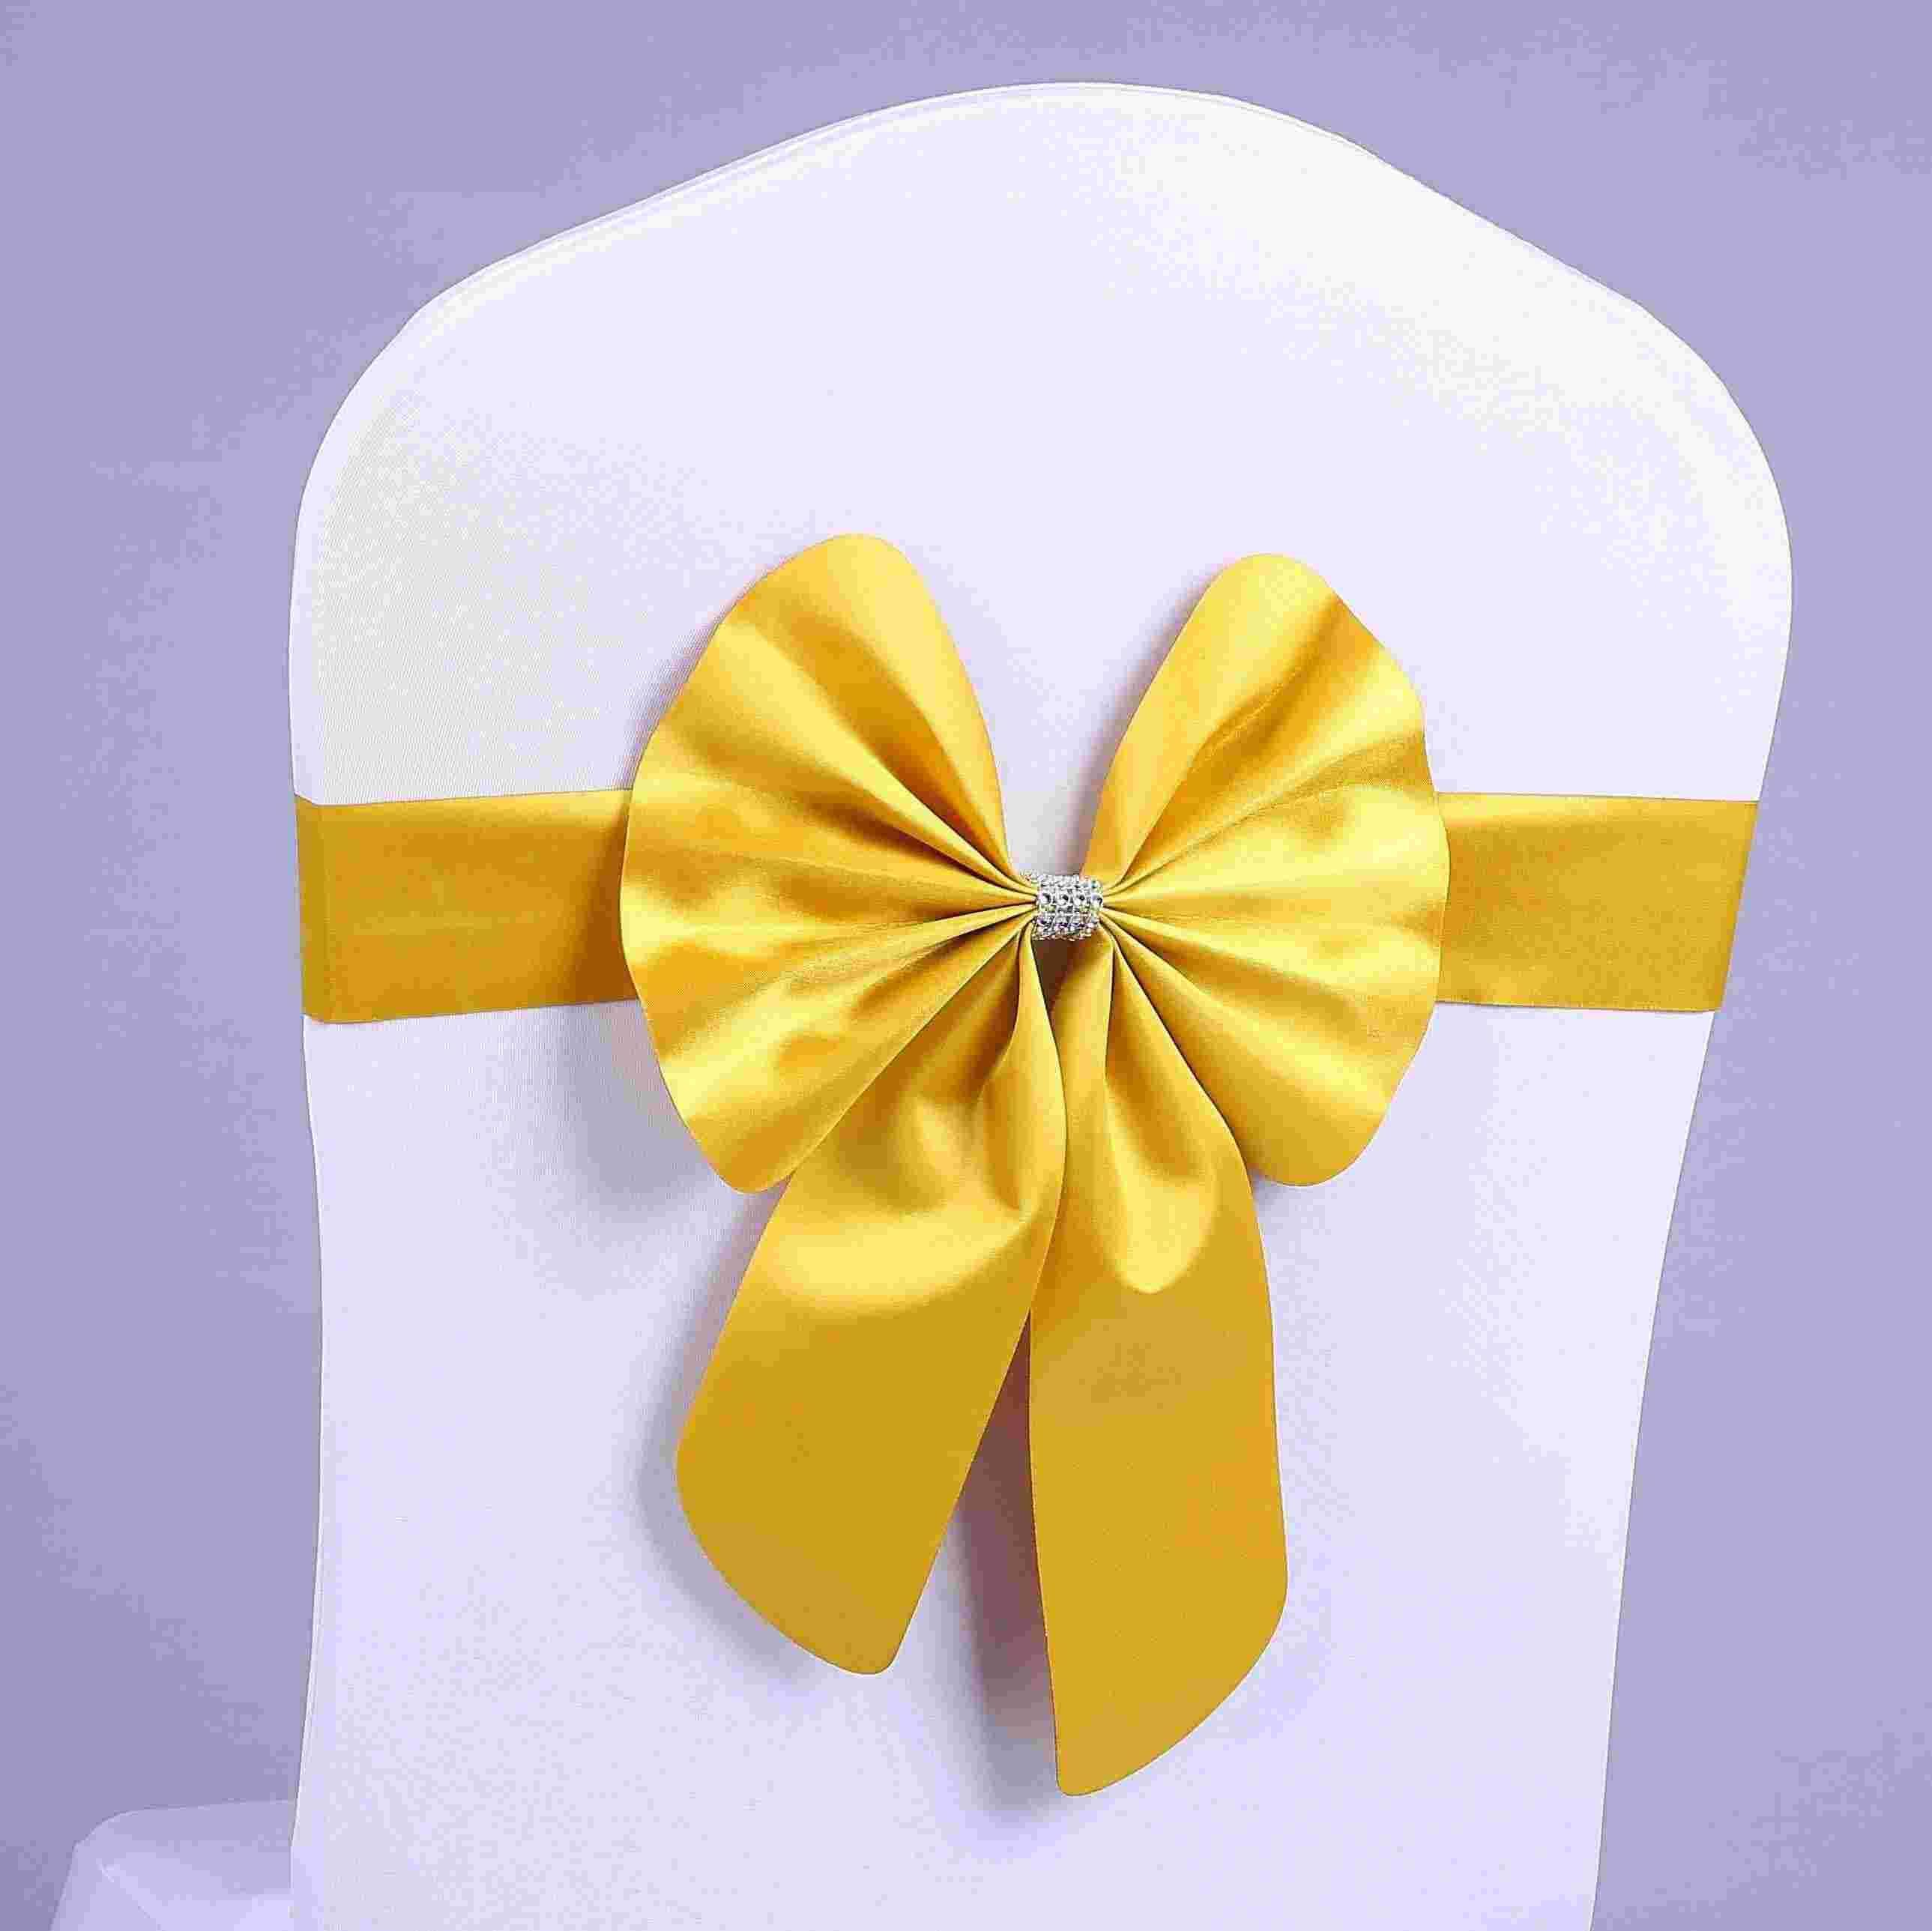 decorative chair covers wedding recovering a stretch bowknots sashes for chairs back decorations elastic bows hotel cover bands fitted ivory